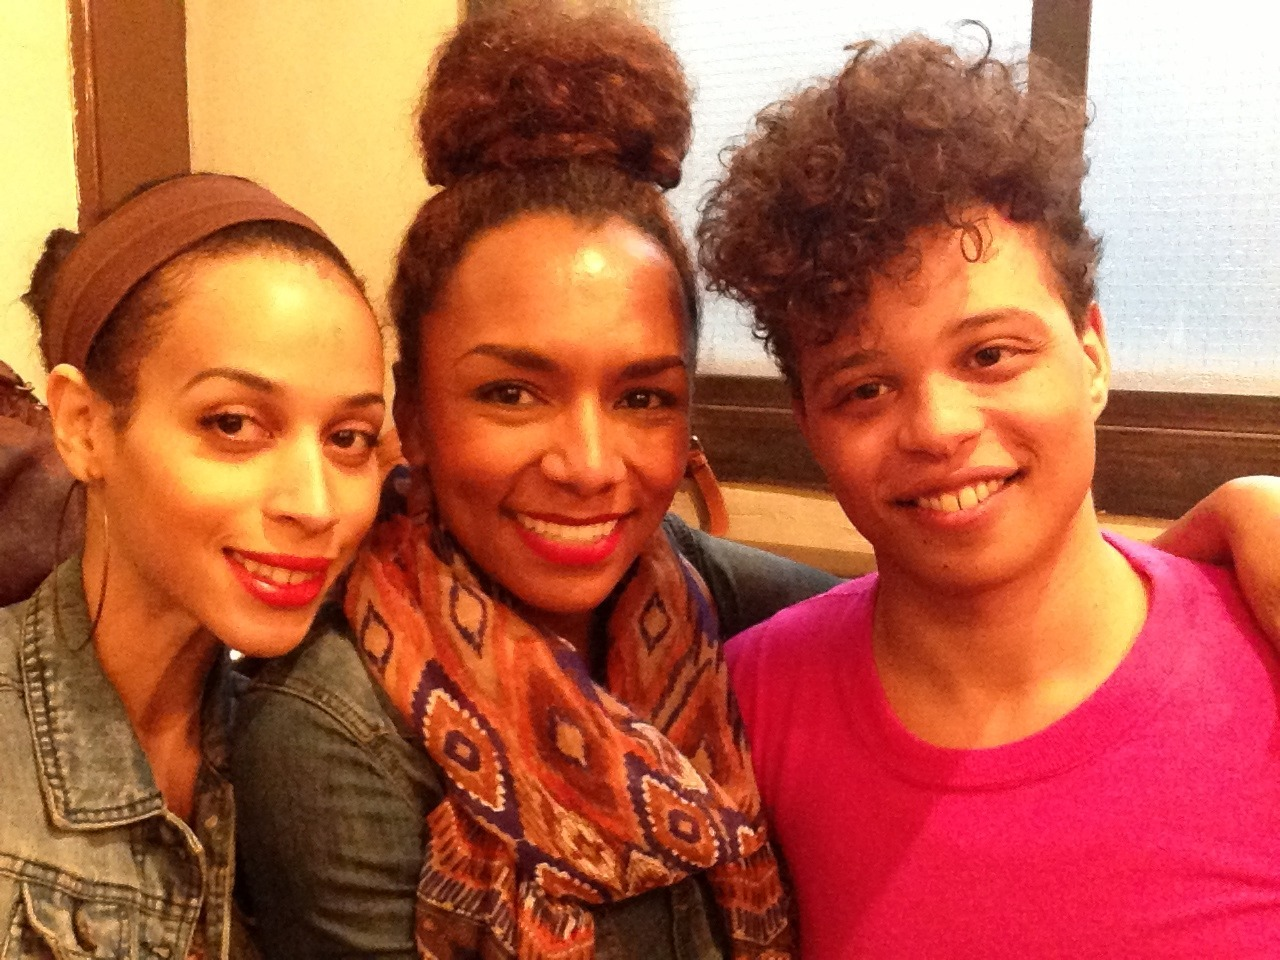 Isis King snapped this photo of the Isis, Janet & me having a power kiki -the first step to girlslikeus taking over the world!